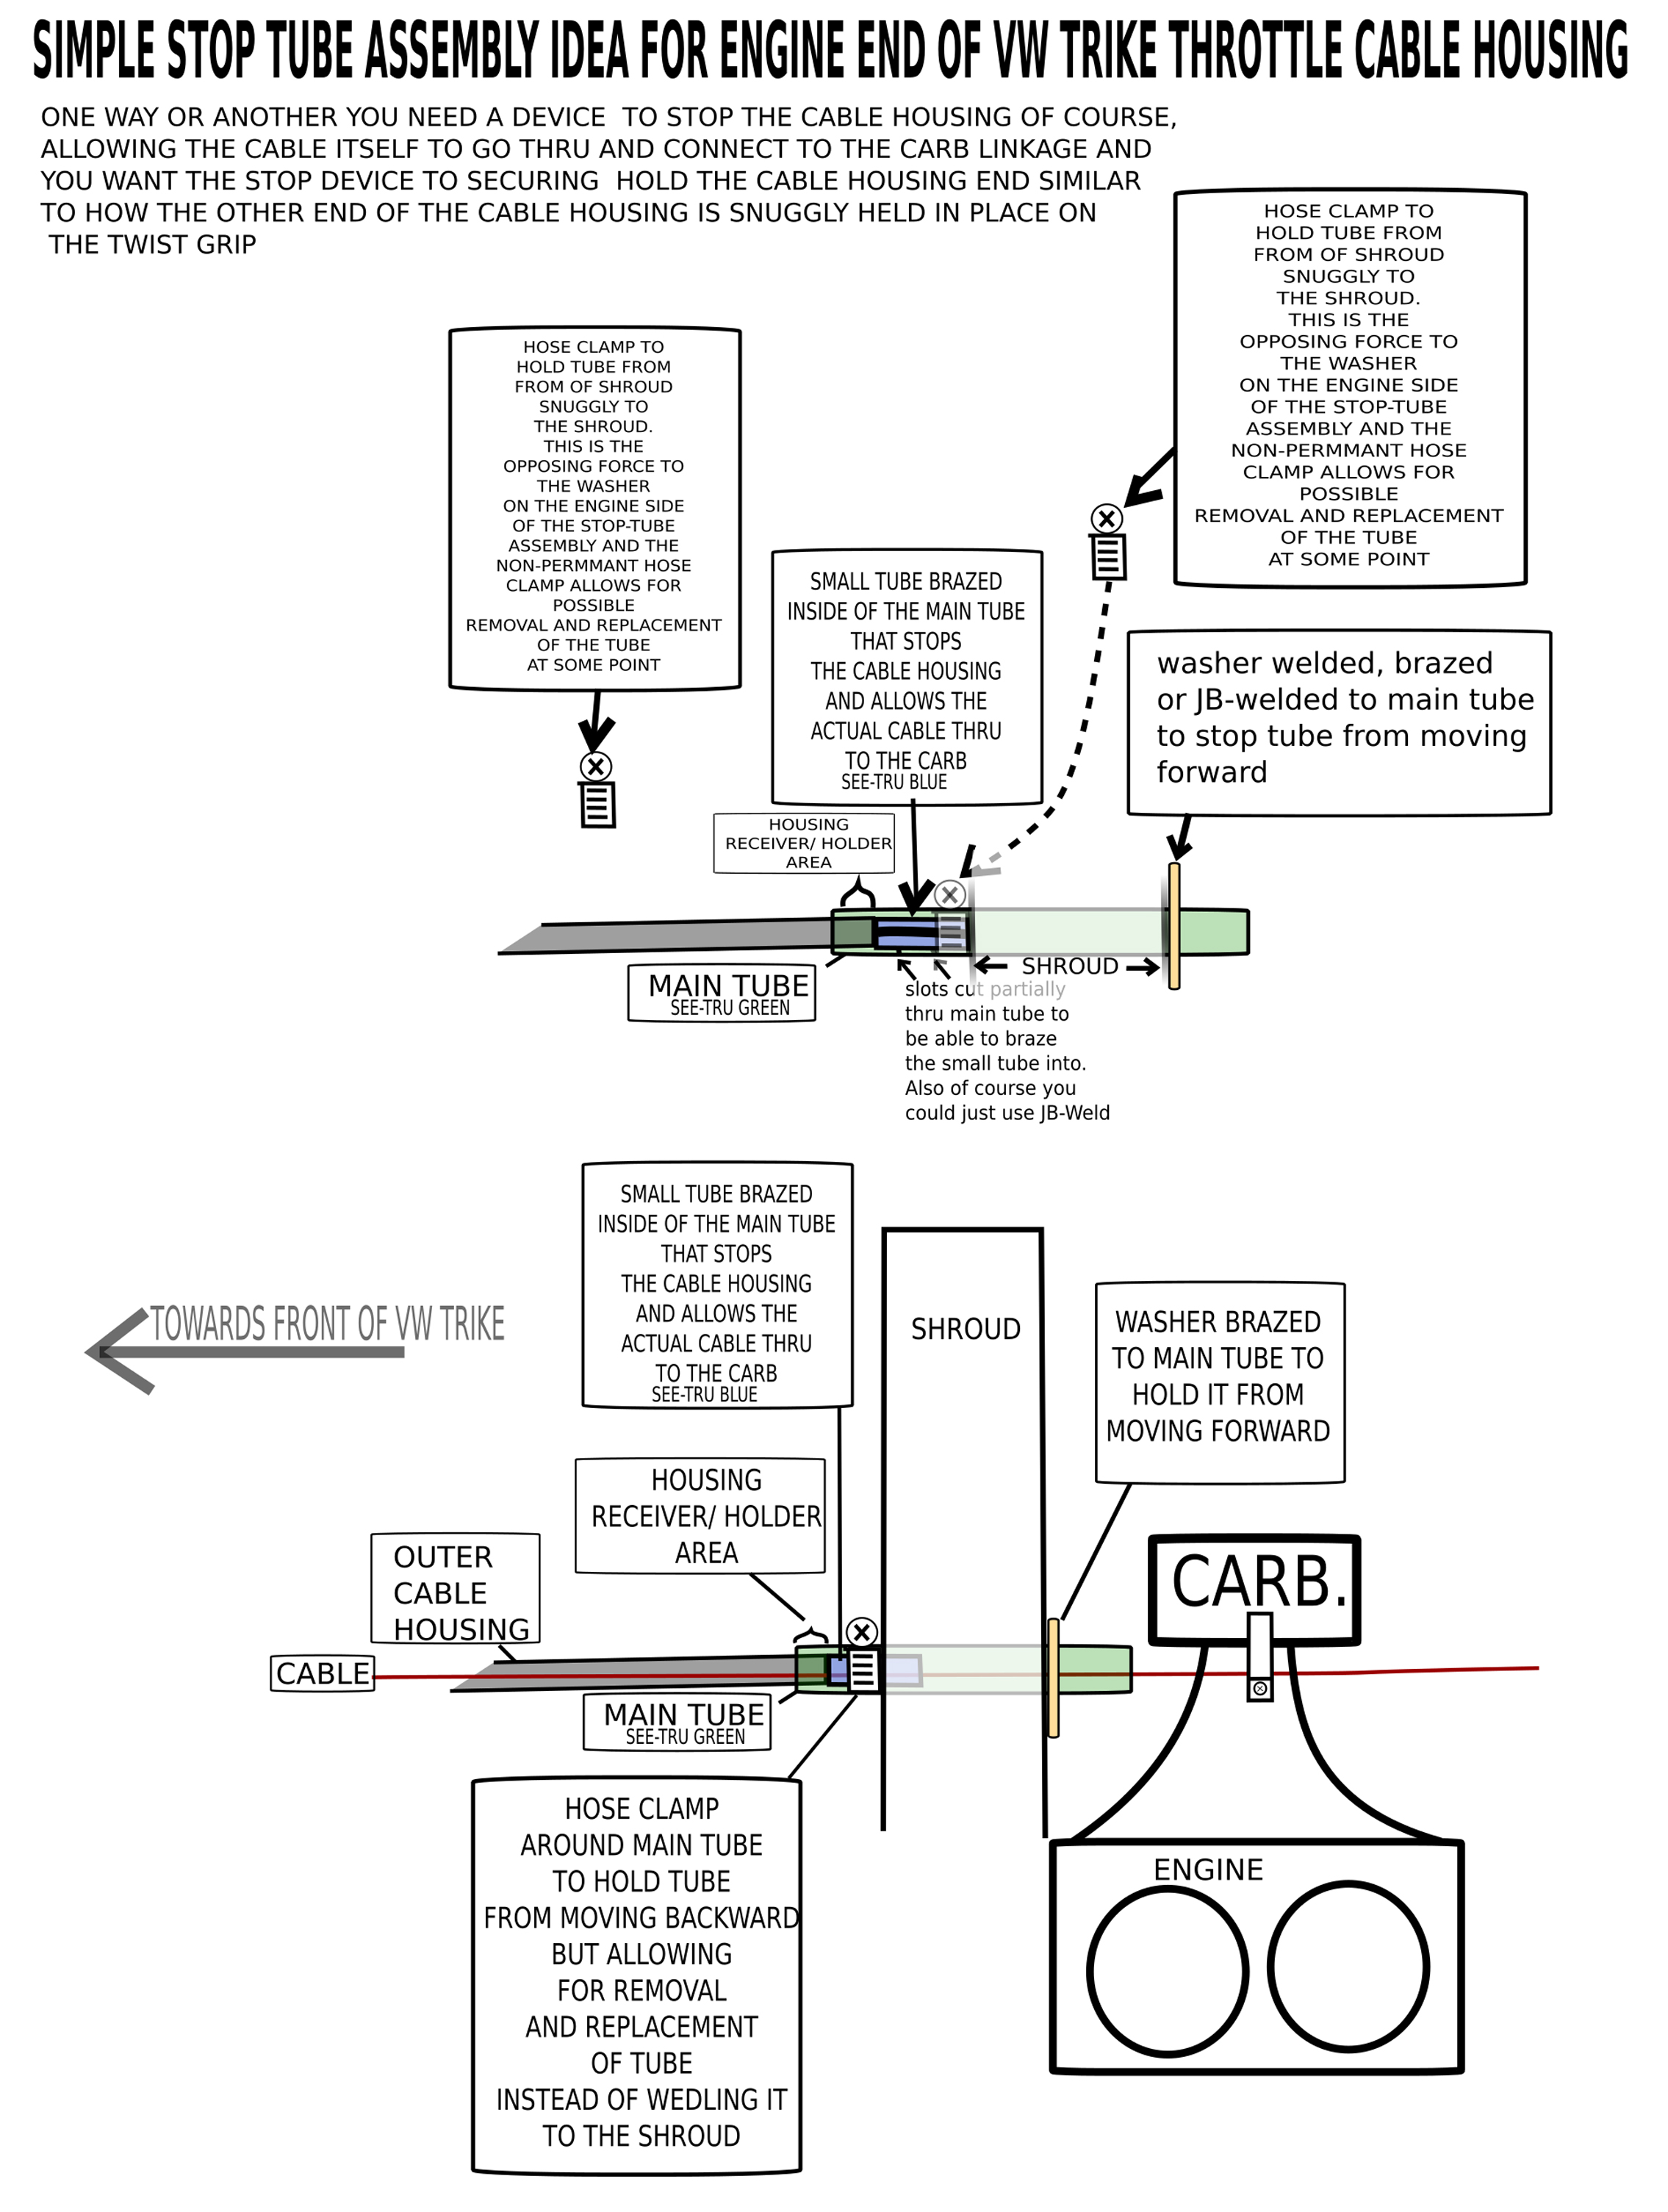 Vw Trike Throttle Cable Wiring Diagram For Harley Universal With Free Shipping In Usa Only